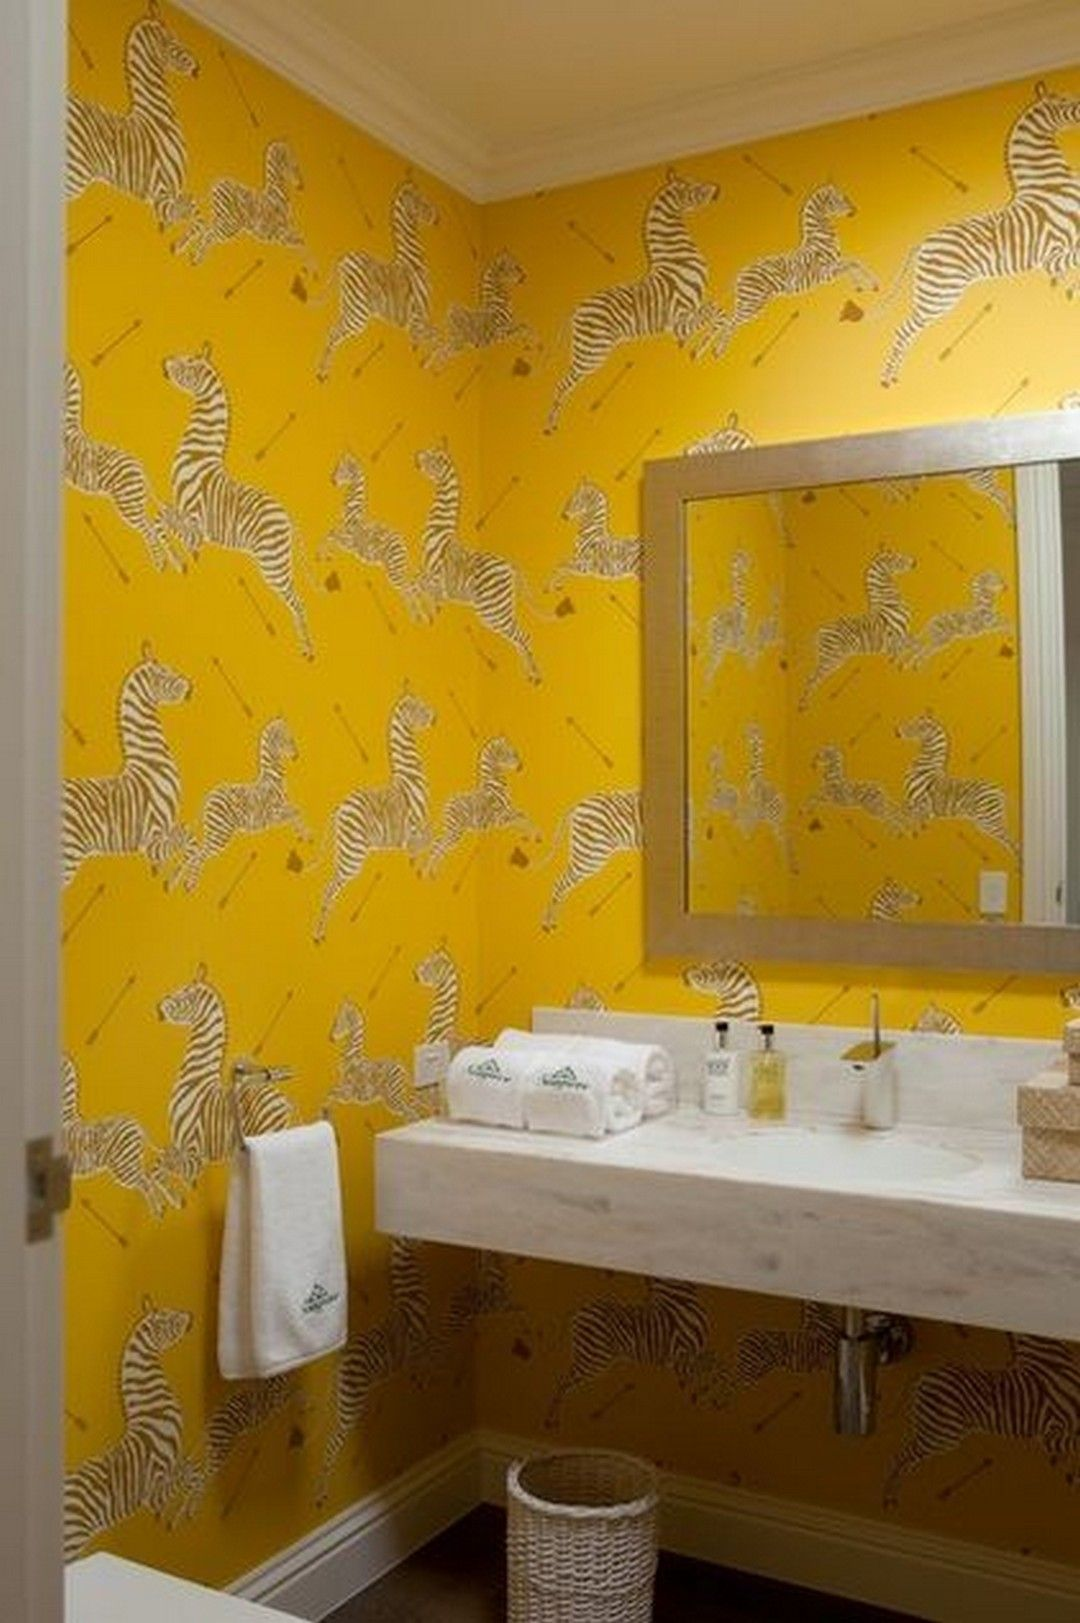 Zebra Theme Bathroom Ideas you Can Manage in Your Own Home | Powder ...